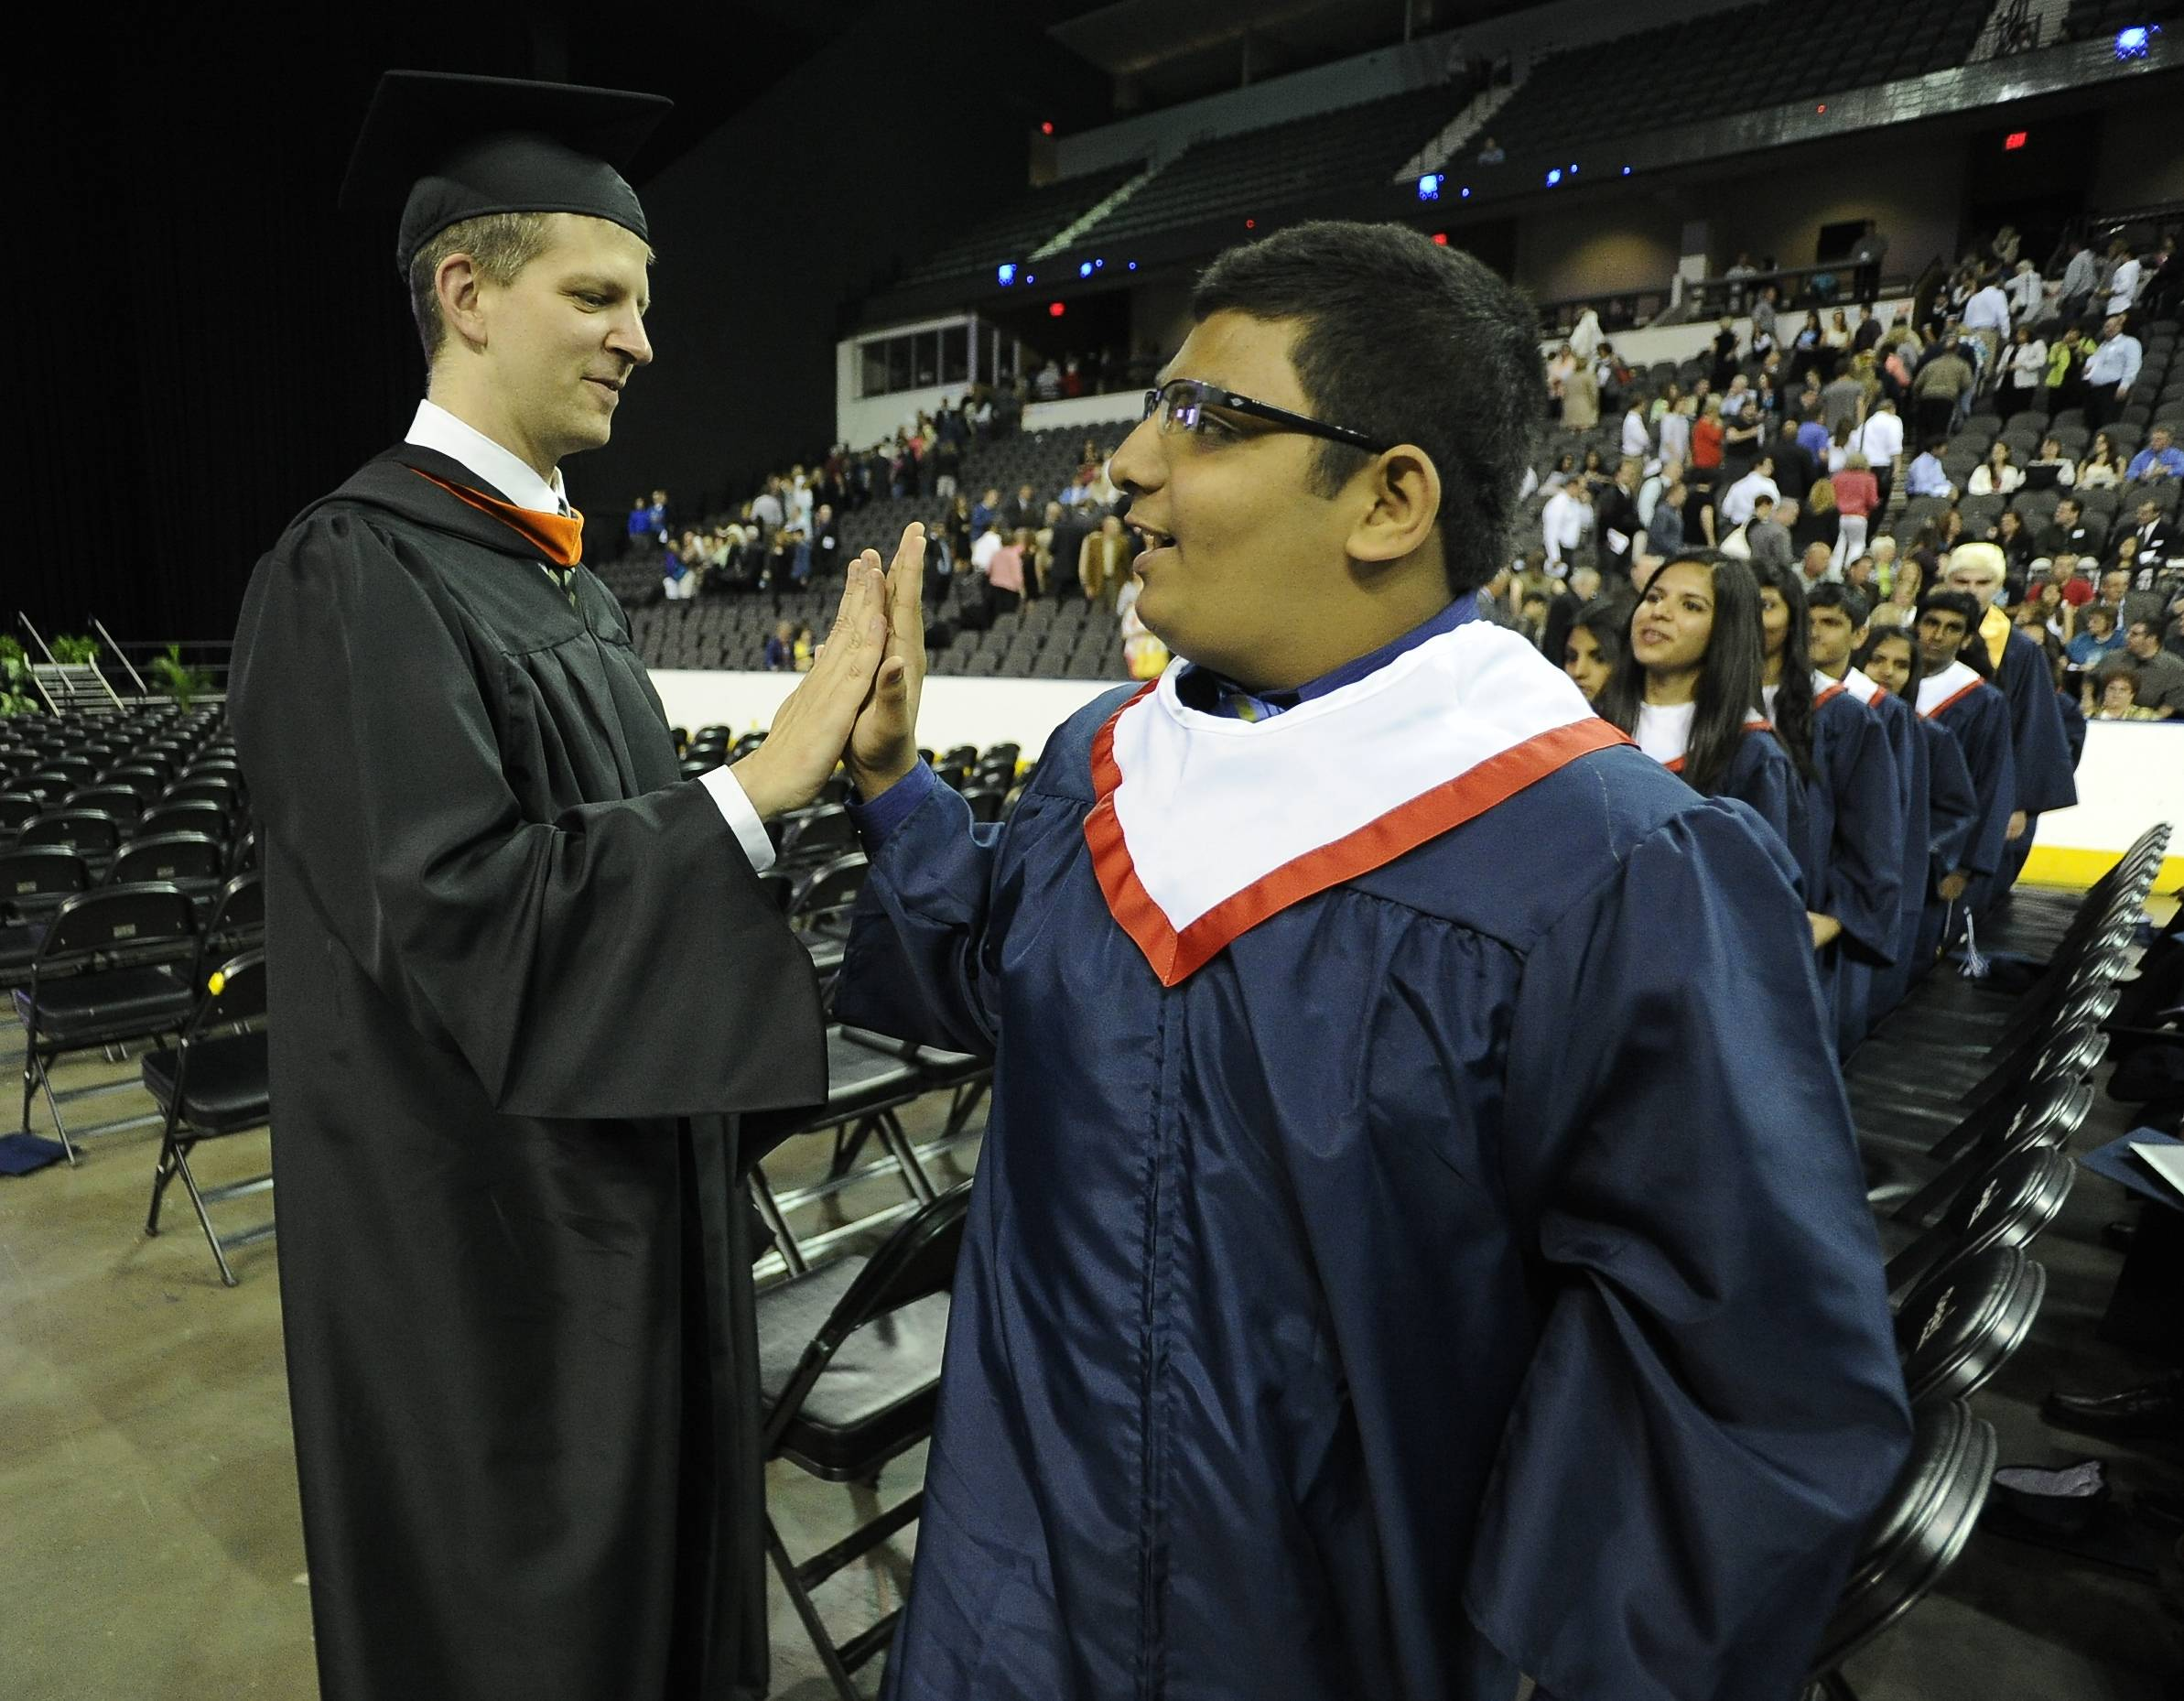 Images from Conant High School's graduation on Sunday, June 2.